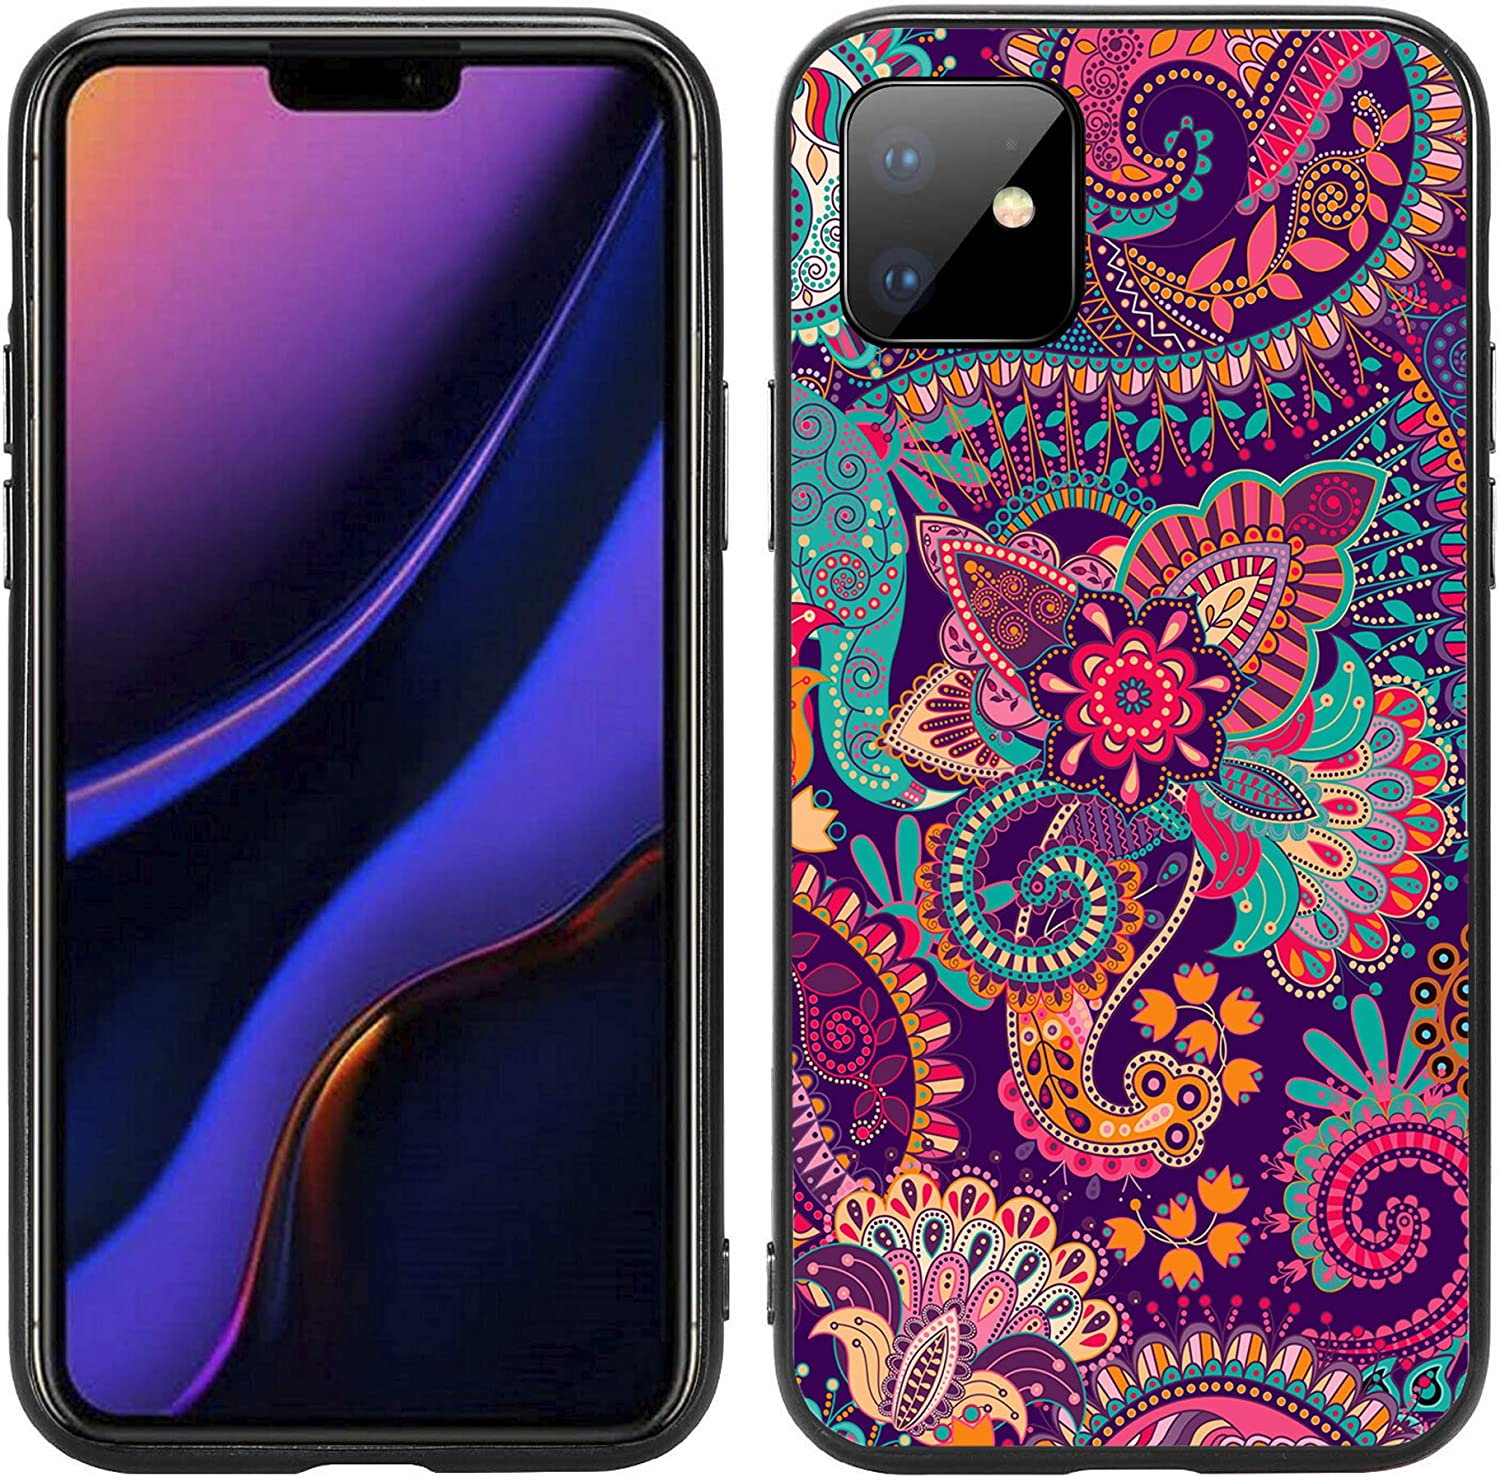 Paisley Flower Print for Oakland Mall iPhone 11 2019 Case Atomic Purchase 6.1 Cover by